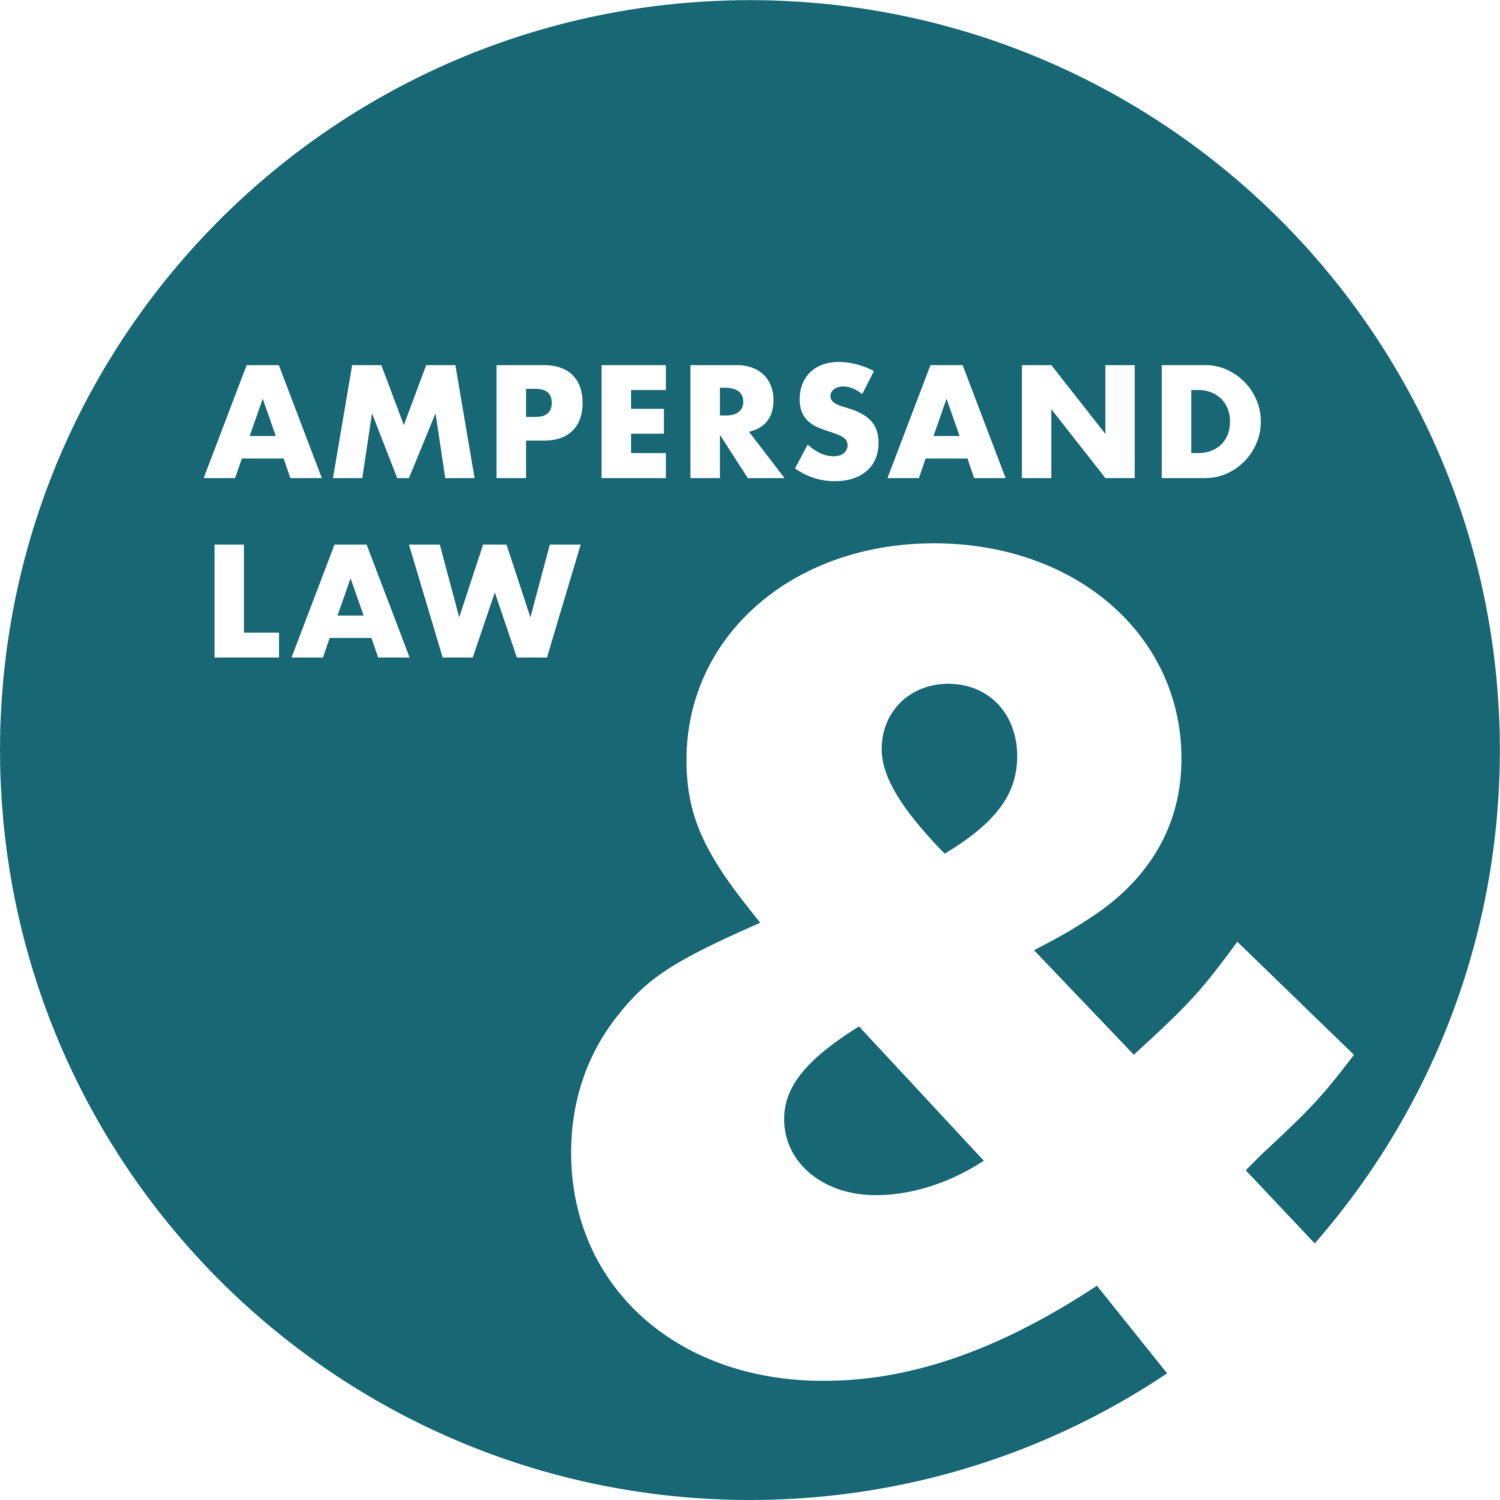 Ampersand Law